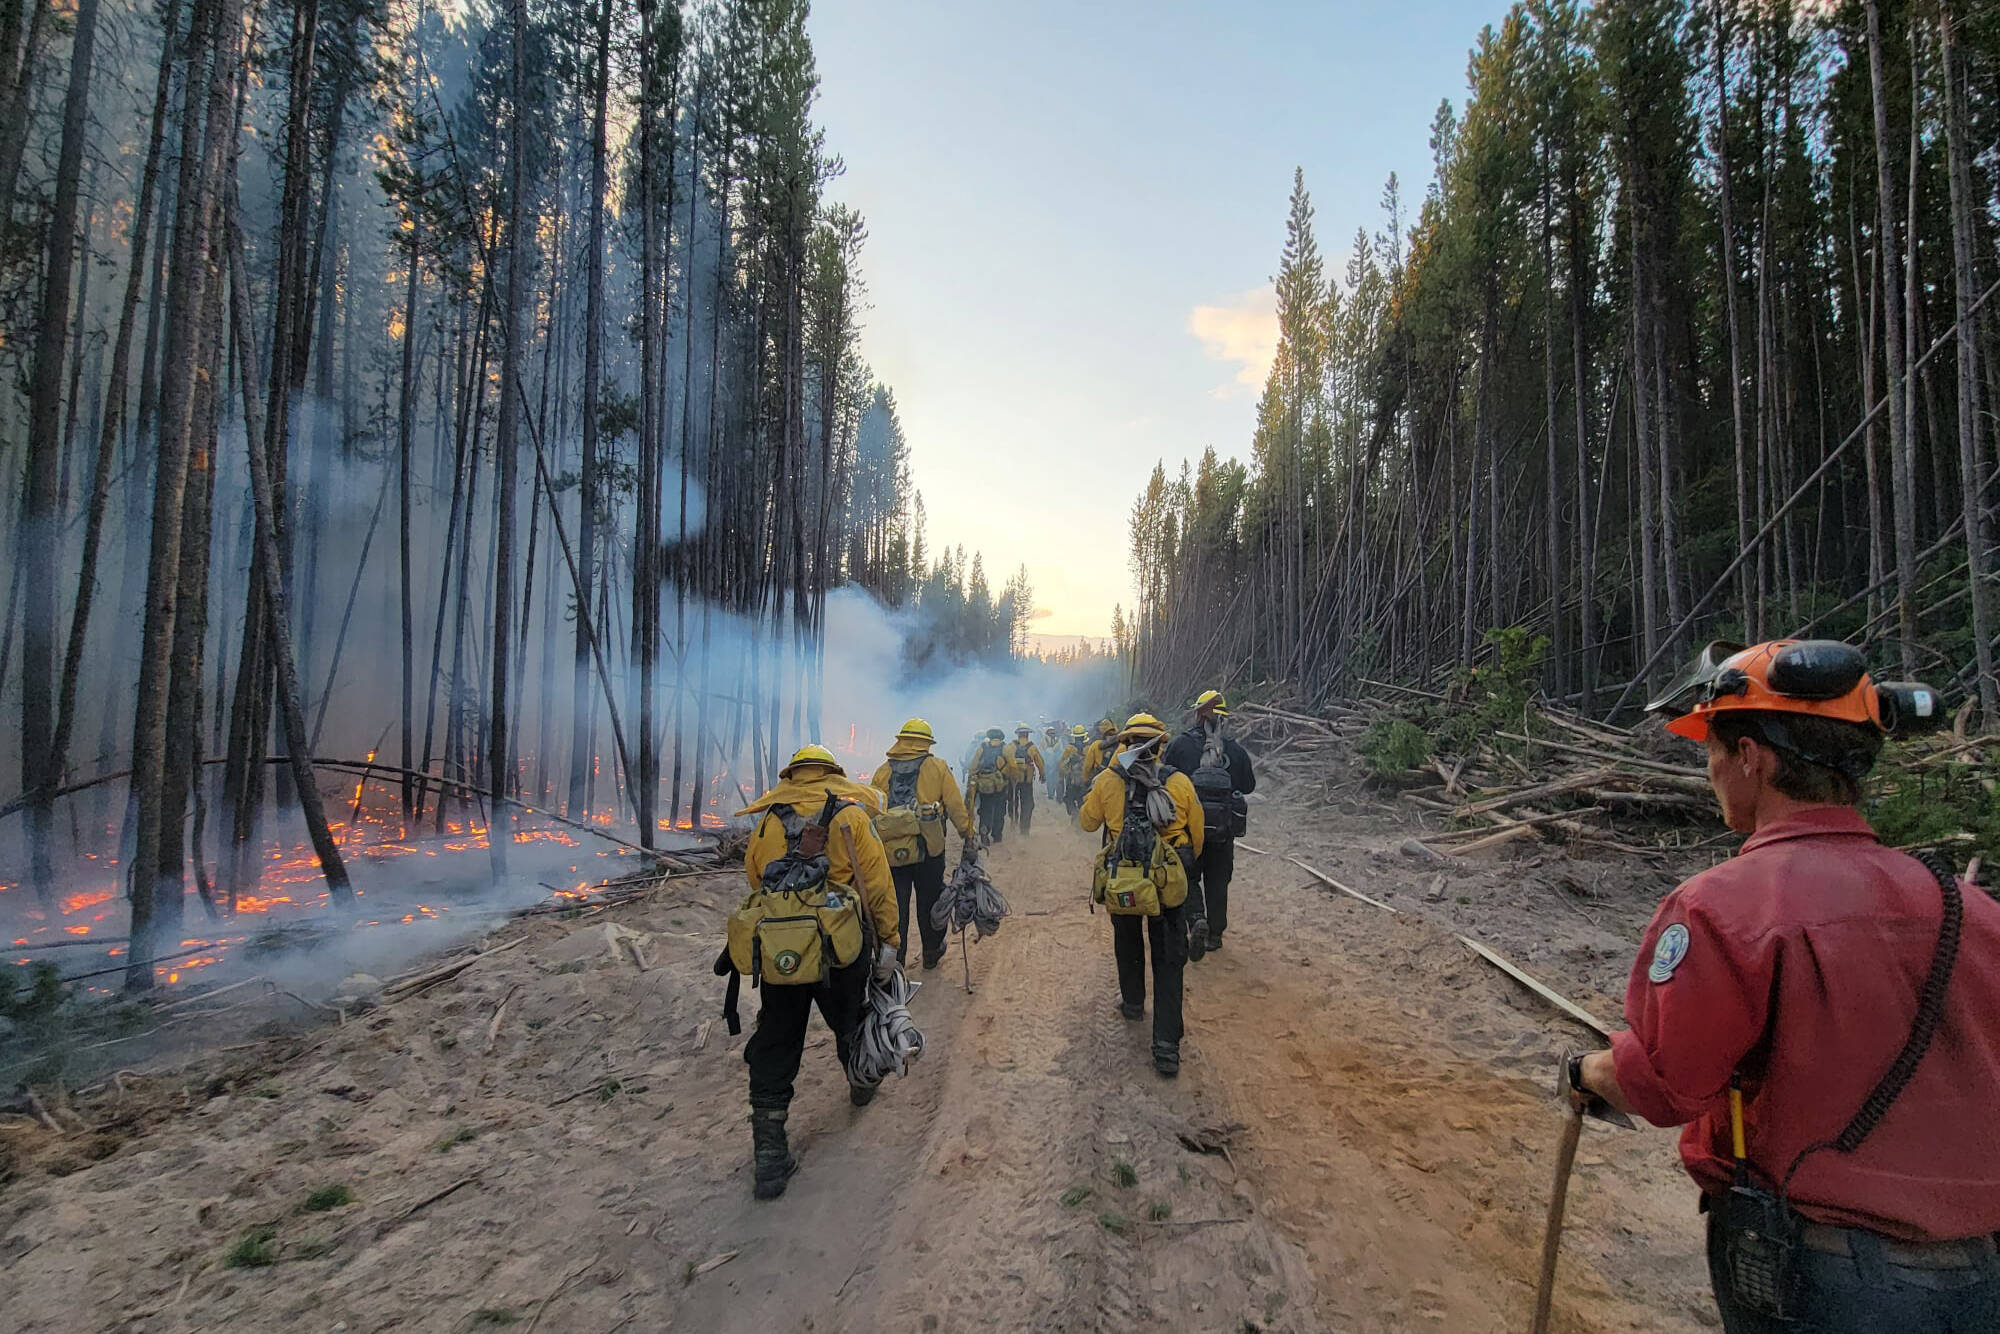 Mexican firefighters helping fight Okanagan wildfires this summer. (BC Wildfire)